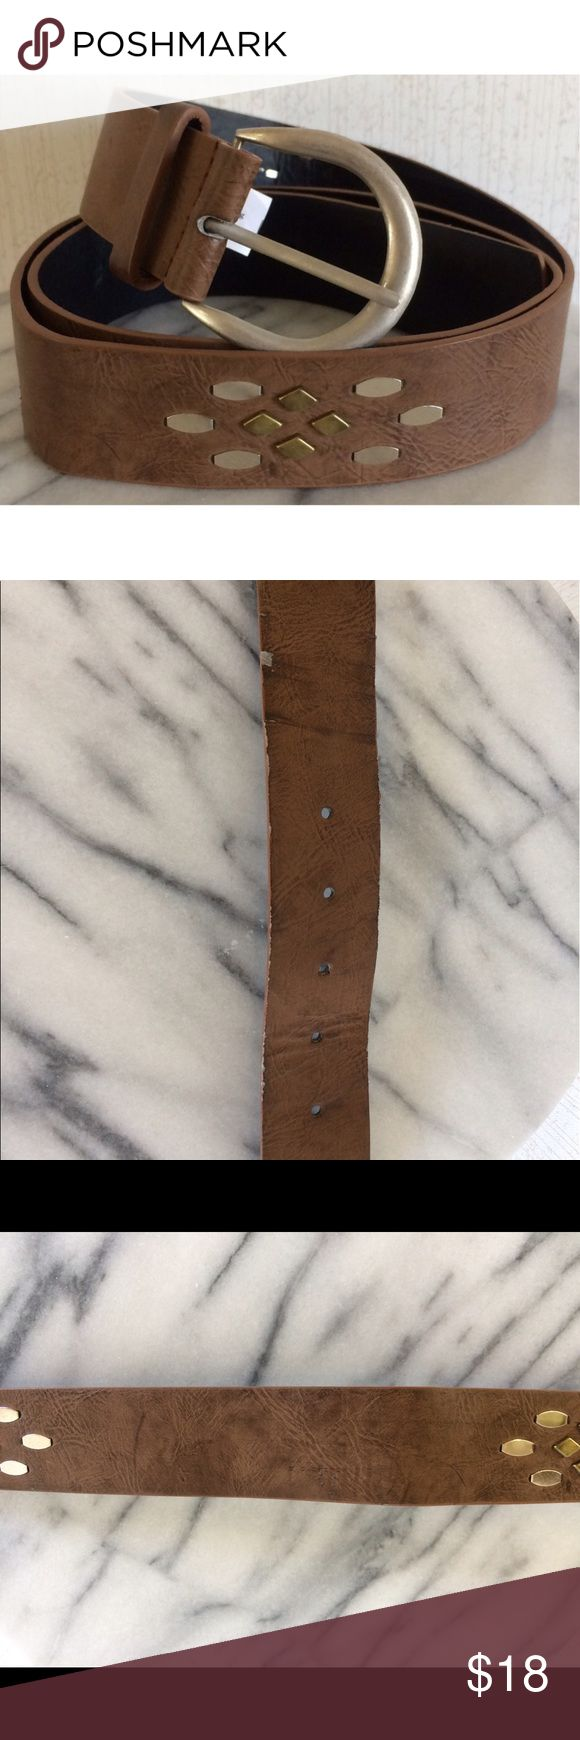 Studded Brown Faux Leather Belt Good condition. Some wear near the holes. Some wear on the back. Super cute faux leather belt. Nice texture to look like leather grain. Gold and silver stud patterns. Silver buckle. Size 16. All offers welcome Accessories Belts